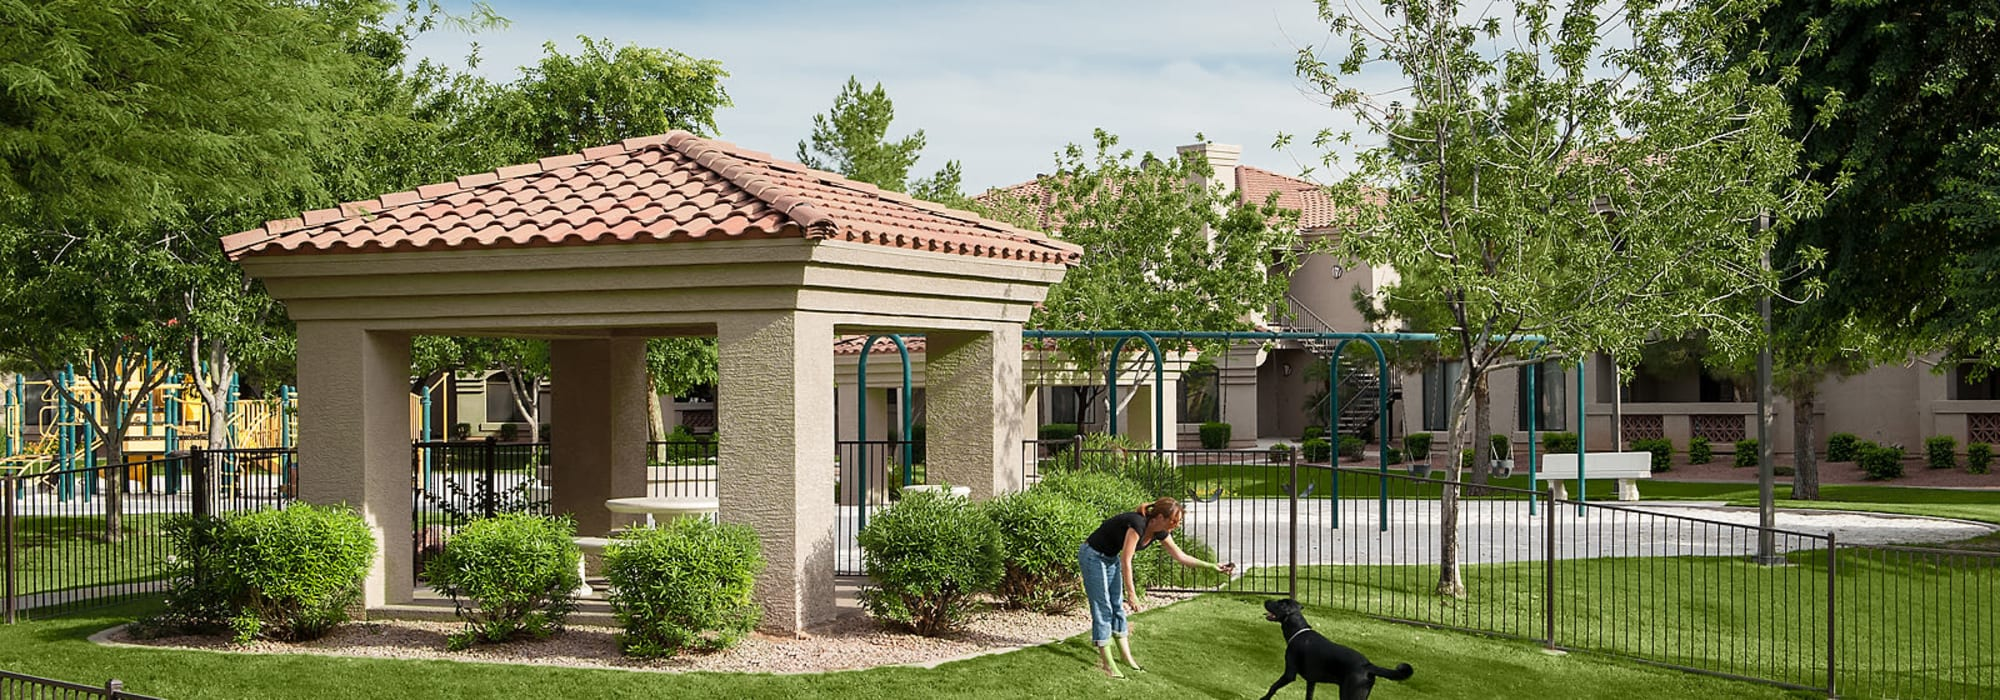 Onsite dog park with green grass at San Pedregal in Phoenix, Arizona